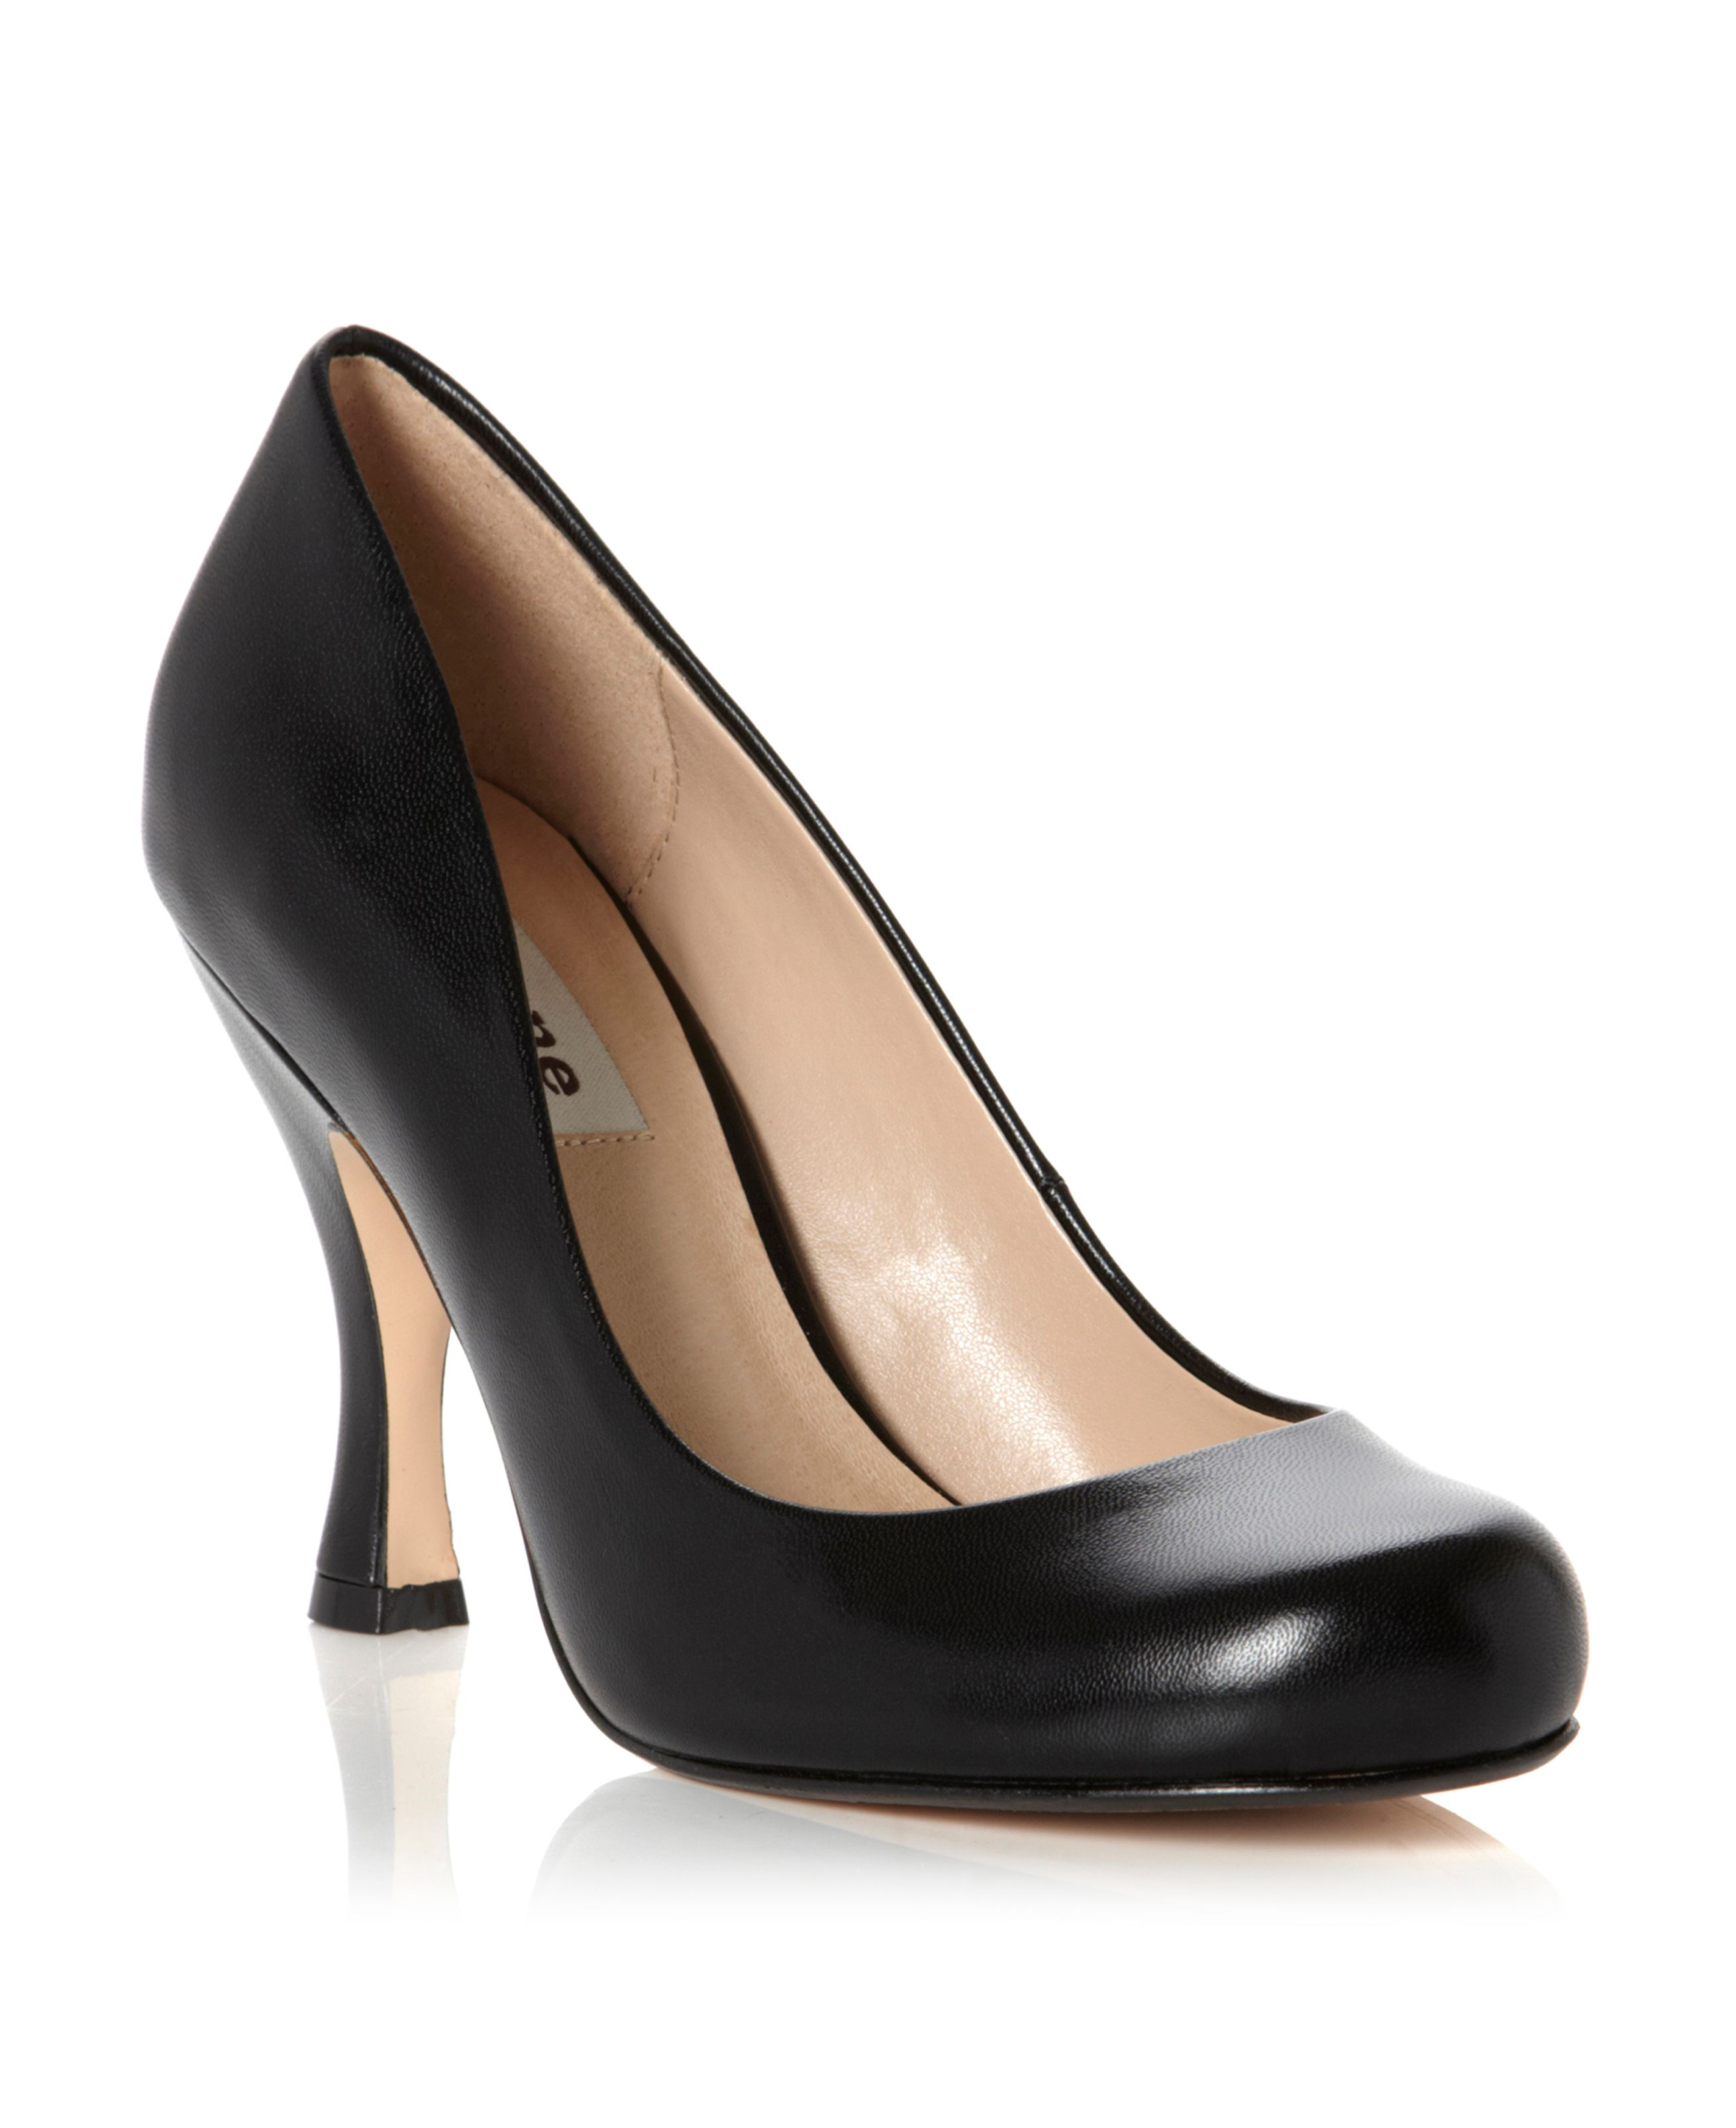 Admire Round Toe Court Shoes